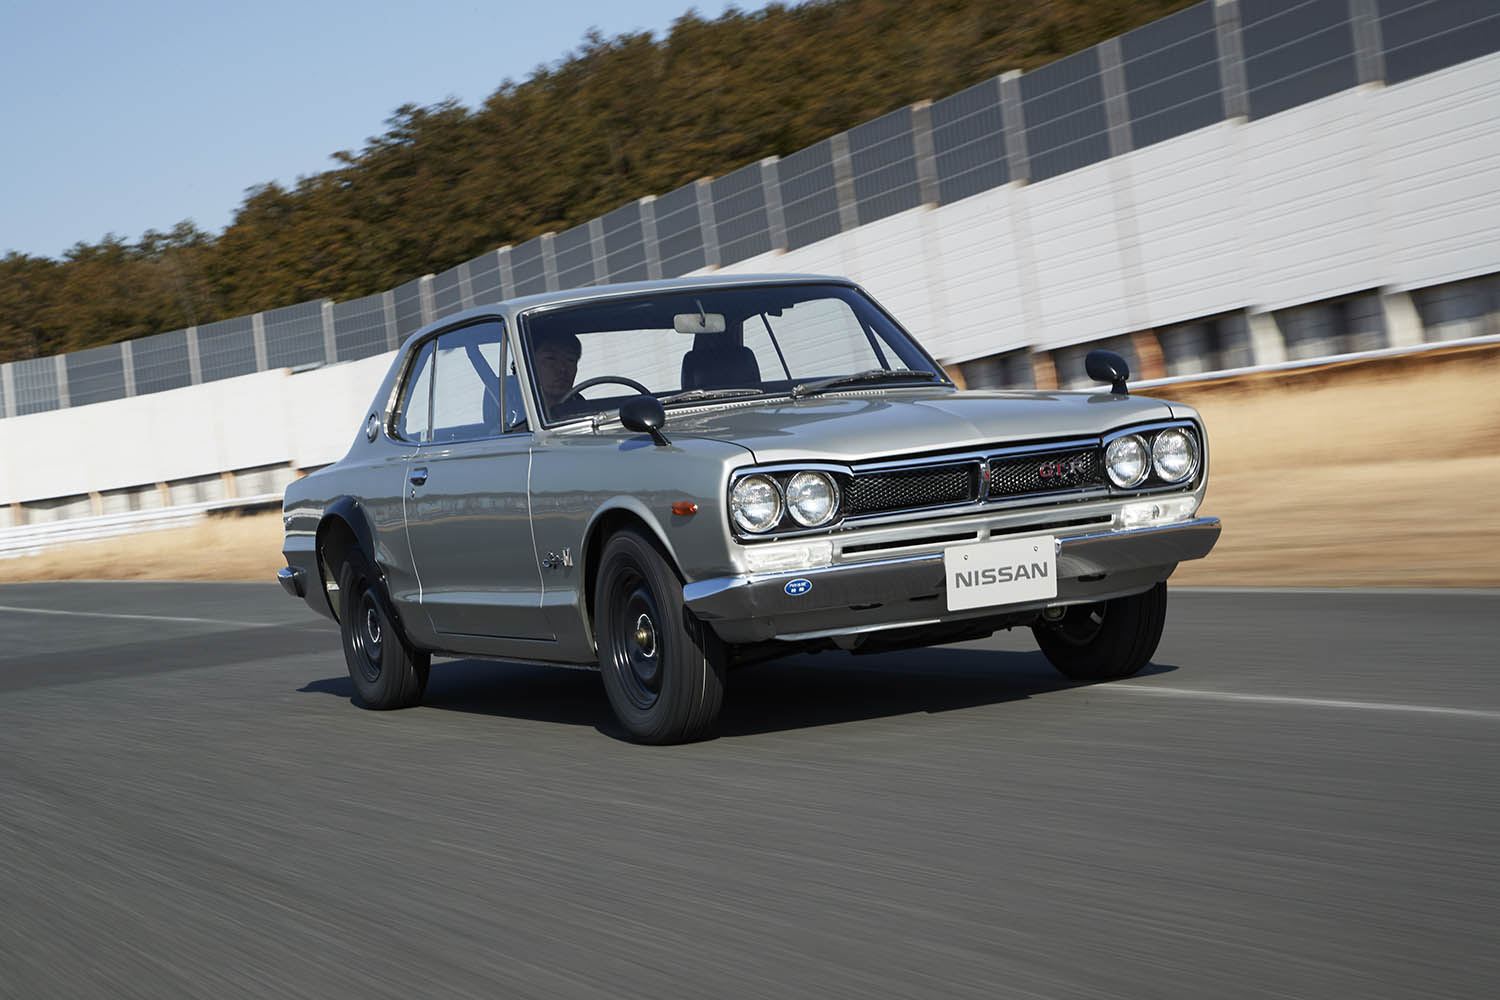 GT-R_KPGC10_1972_Driving_08-source.jpg